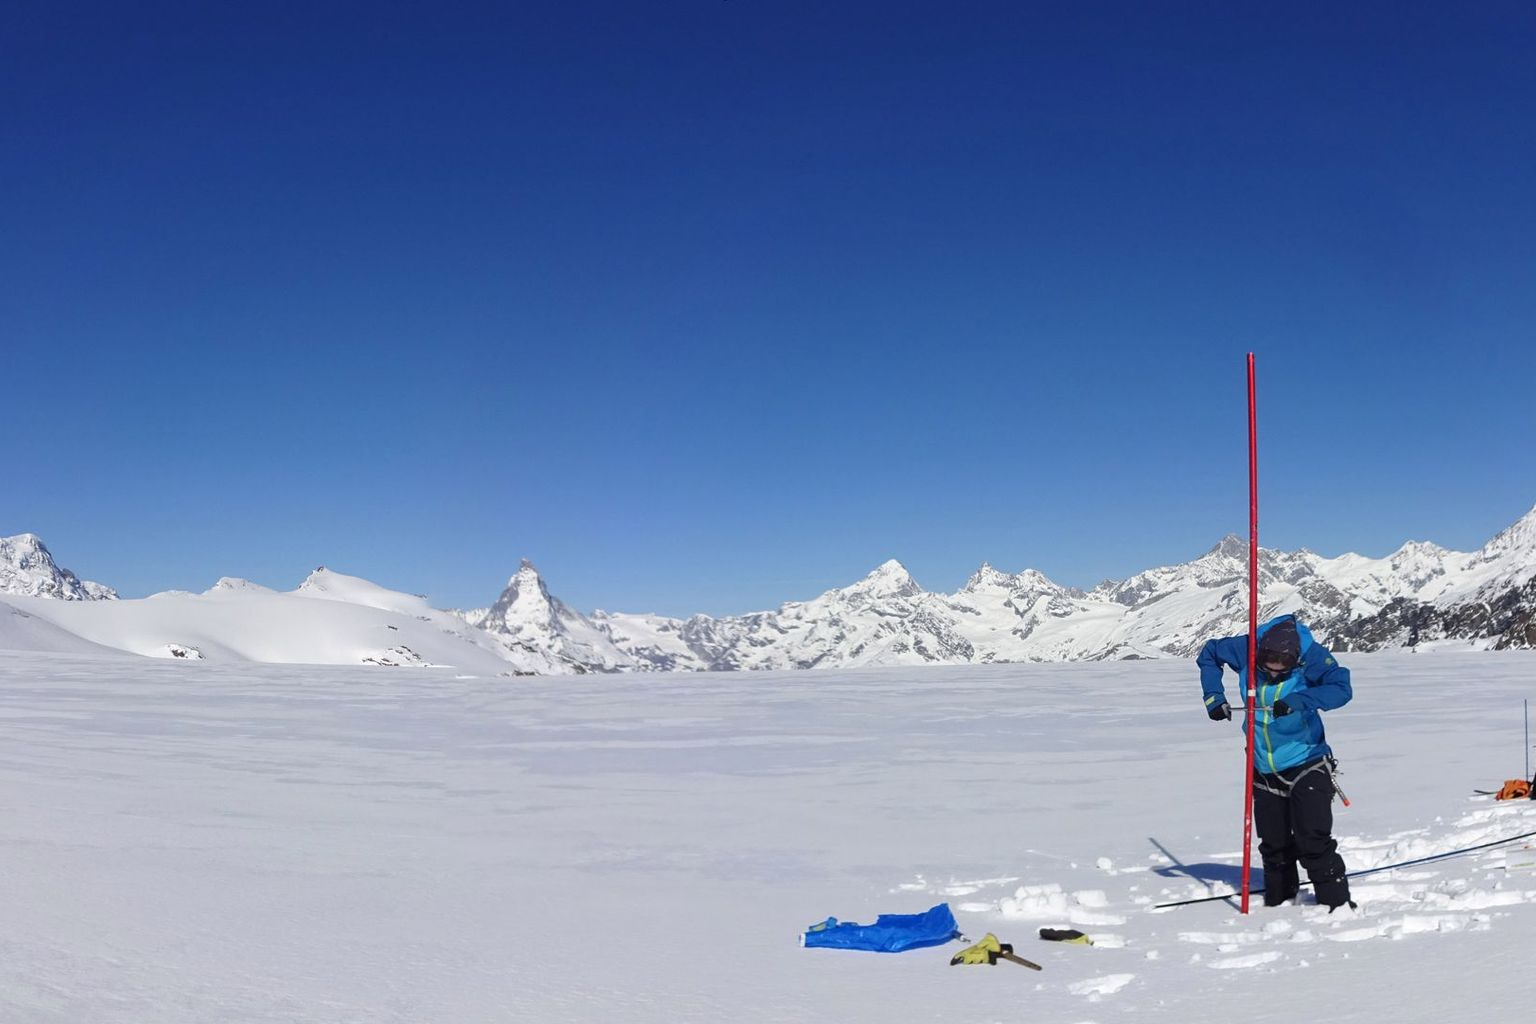 Snow density measurement at about 3300 metres above sea level on Findel Glacier (VS) in May 2020.